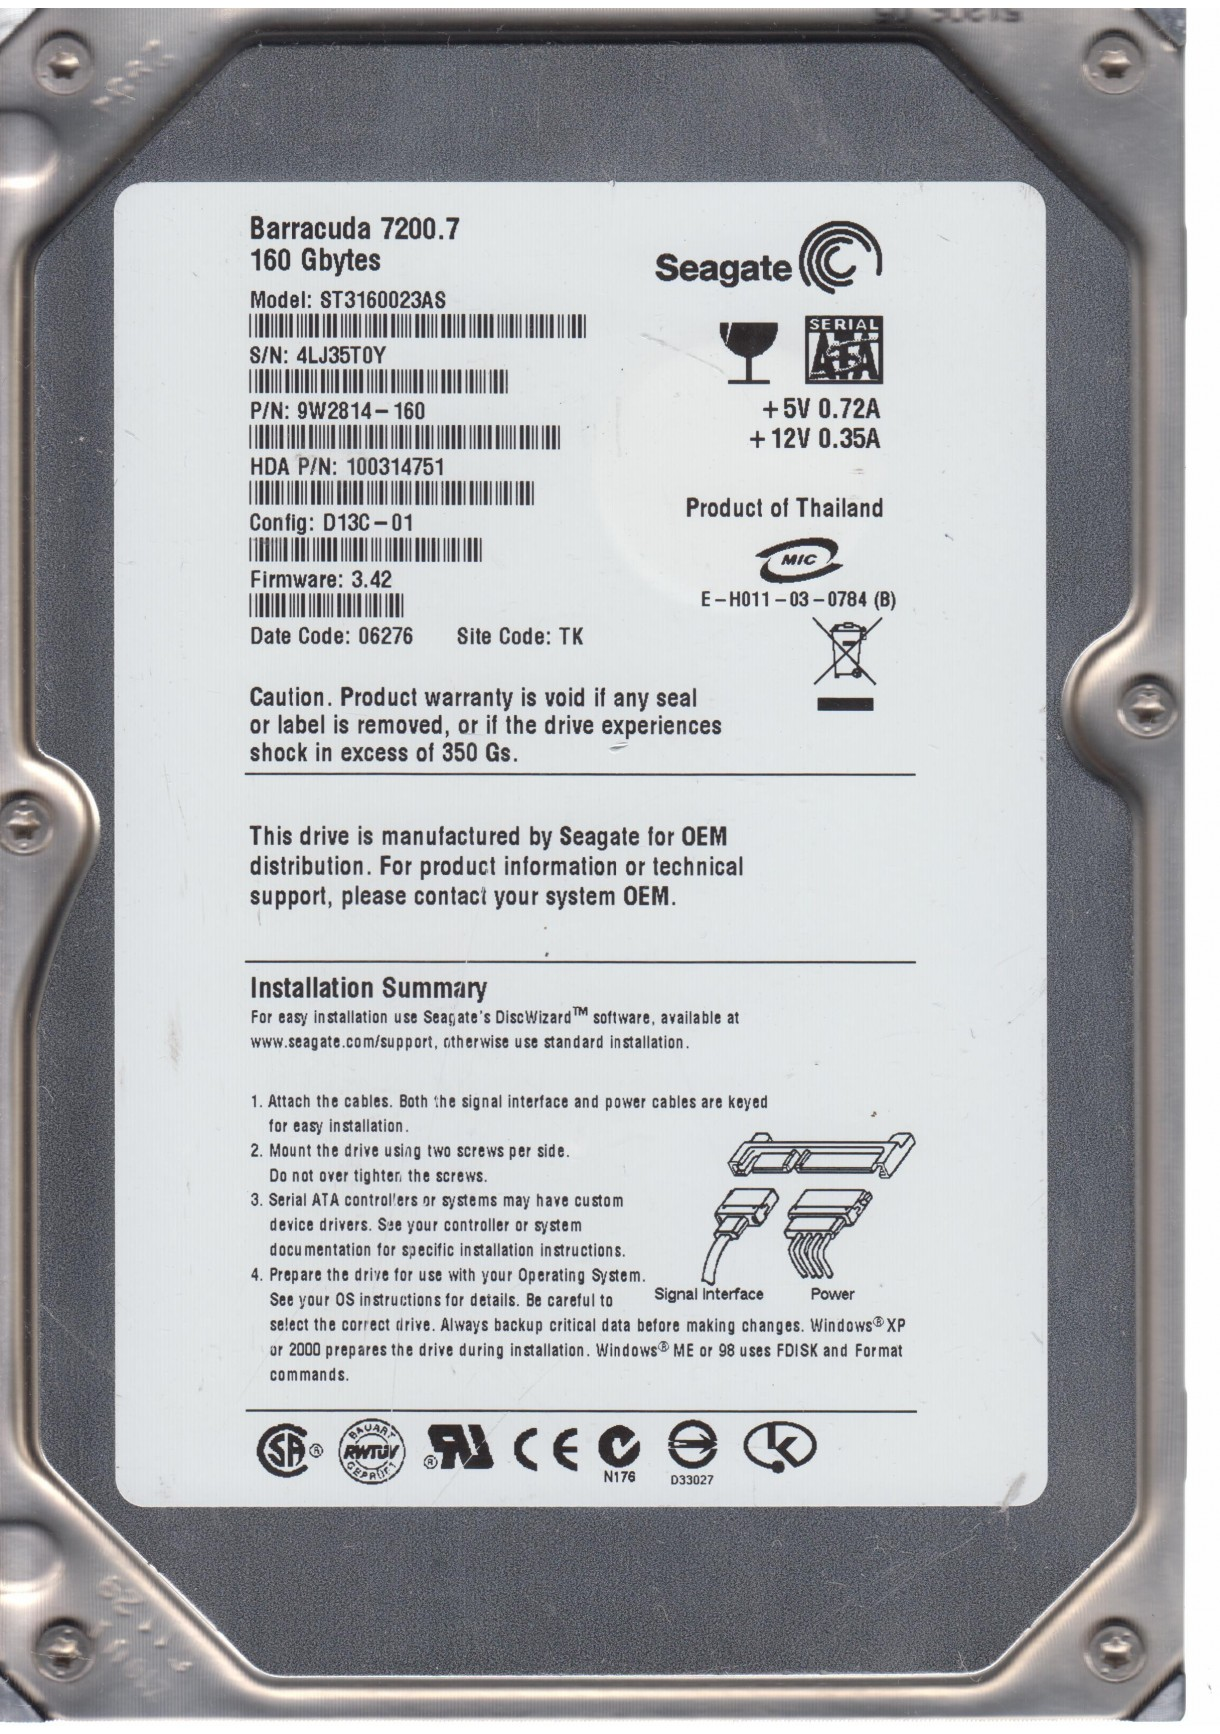 SEAGATE ST3160023AS FW 3.42 160G 3.5